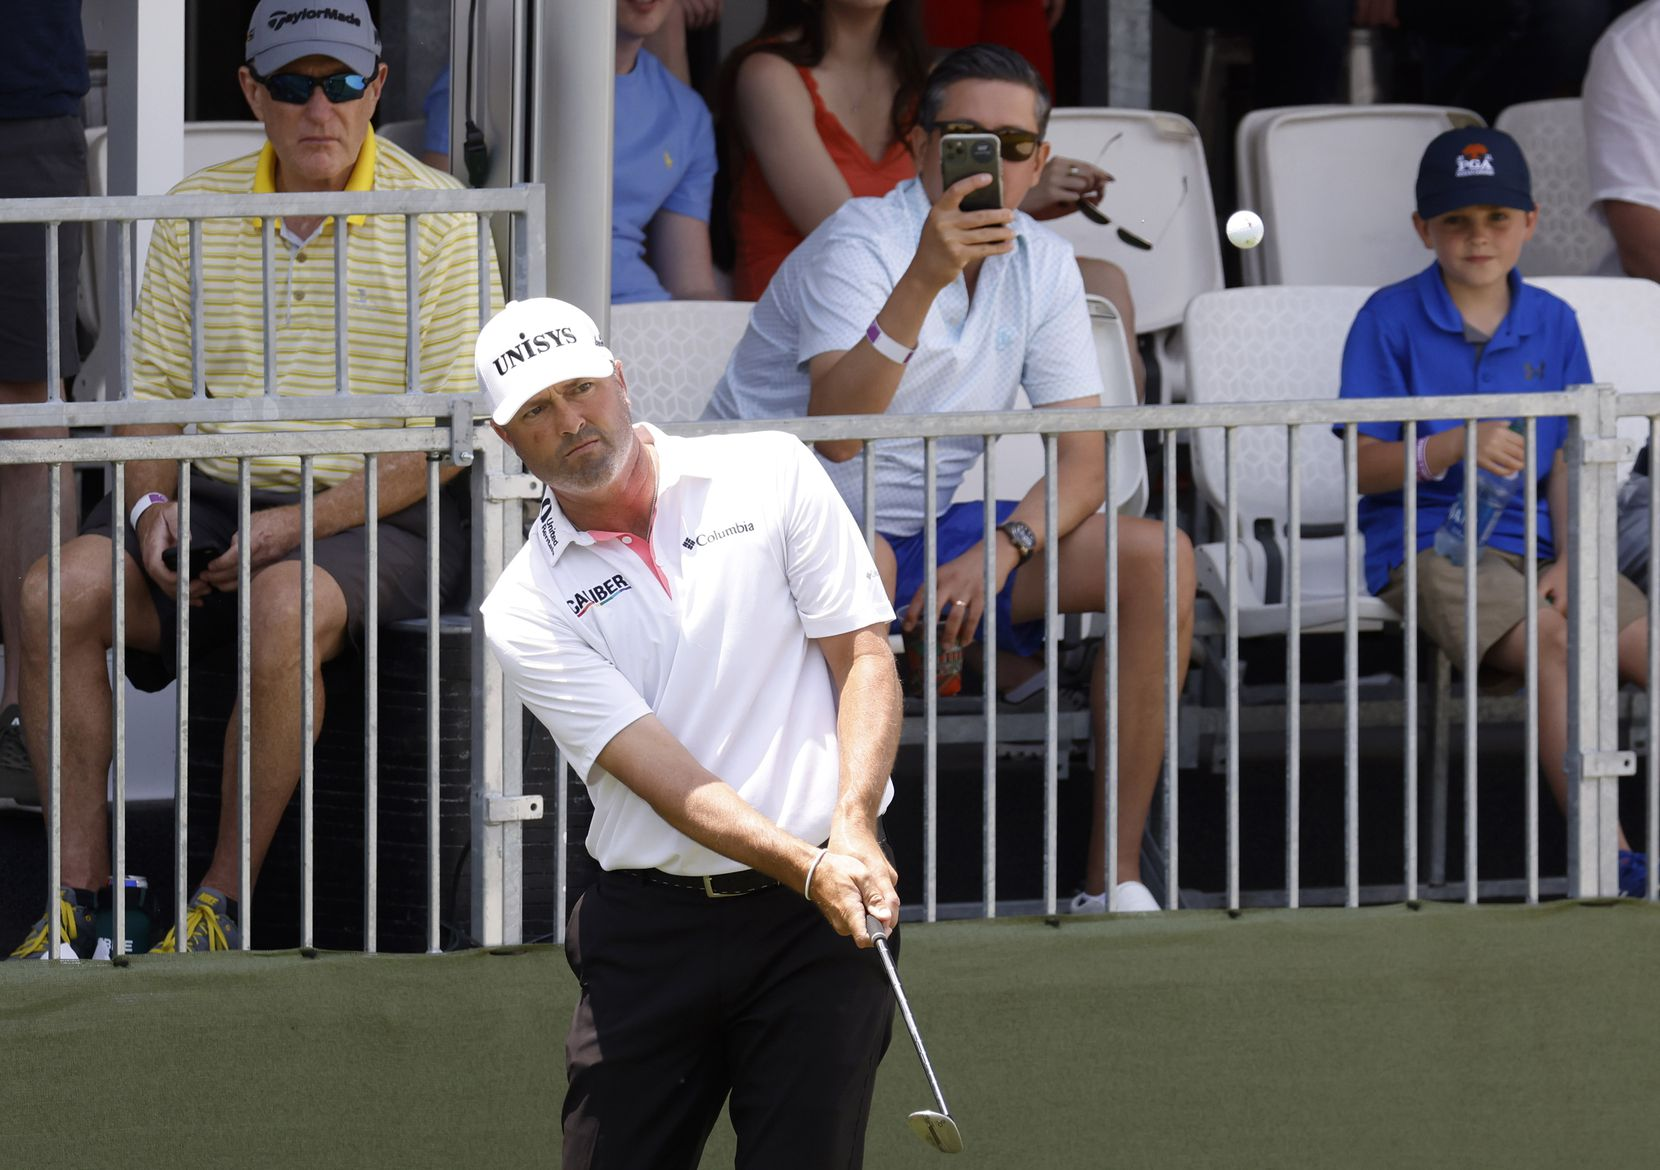 Ryan Palmer watches the ball get on the green on the 17th hole during round 3 of the AT&T Byron Nelson  at TPC Craig Ranch on Saturday, May 15, 2021 in McKinney, Texas. (Vernon Bryant/The Dallas Morning News)